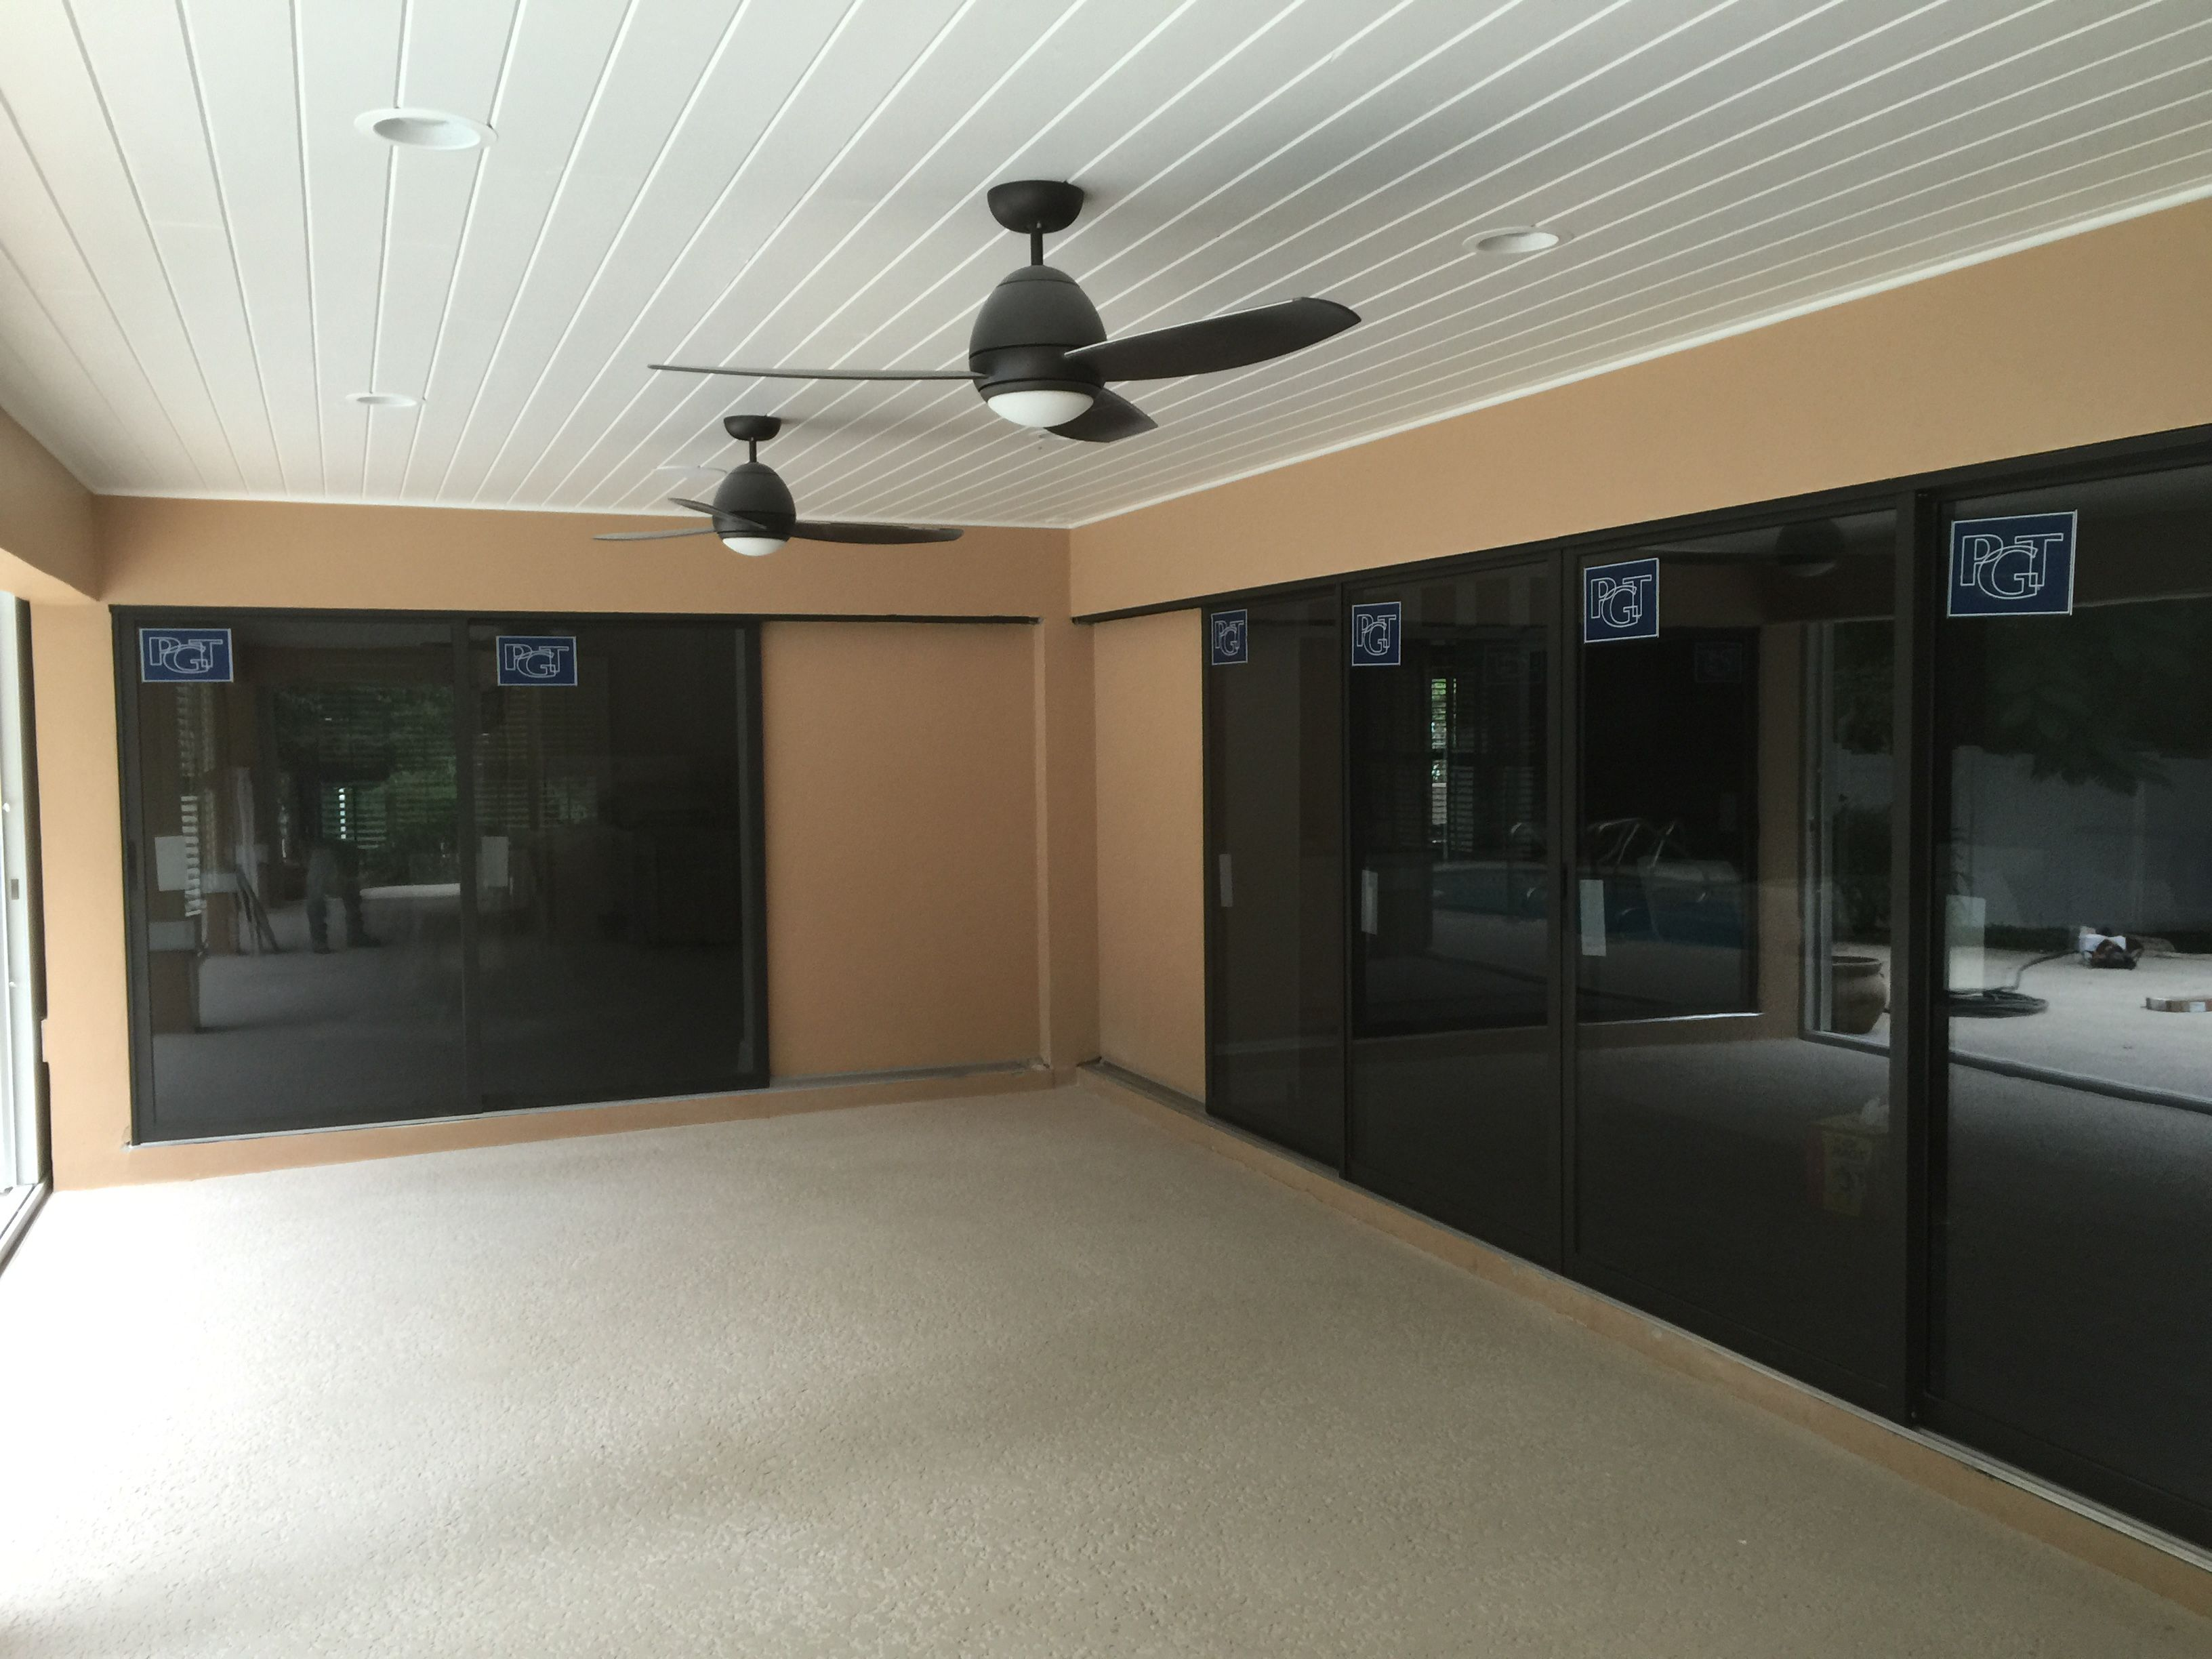 Pgt Vinyl Sliding Glass Doors Of Pgt Doors Impact